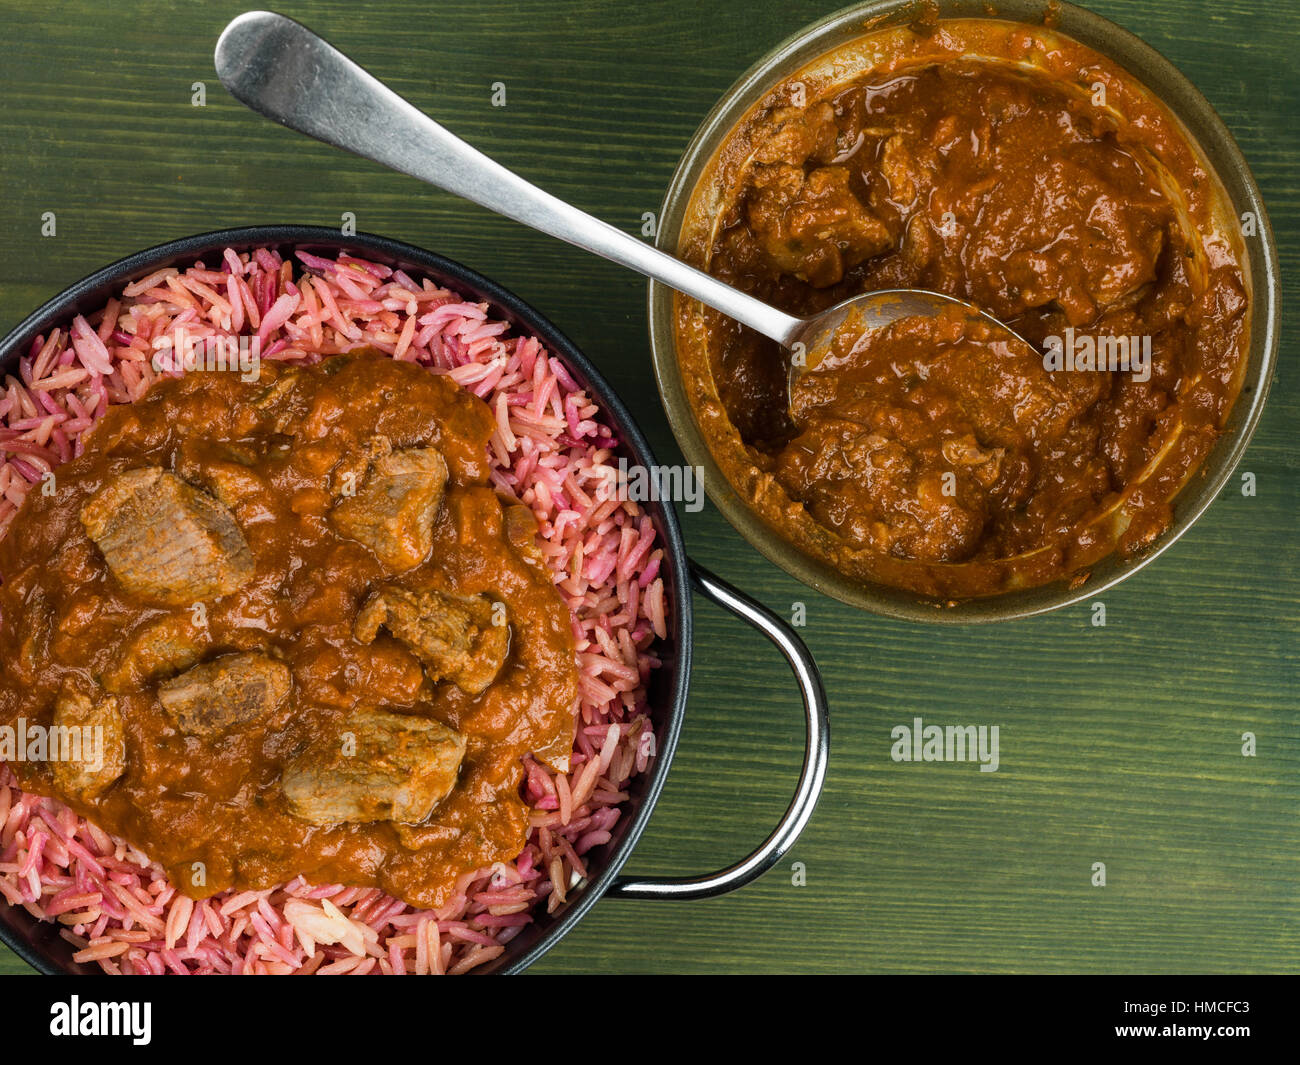 Indian Style Lamb Rogan Josh Curry With Pilau Rice - Stock Image